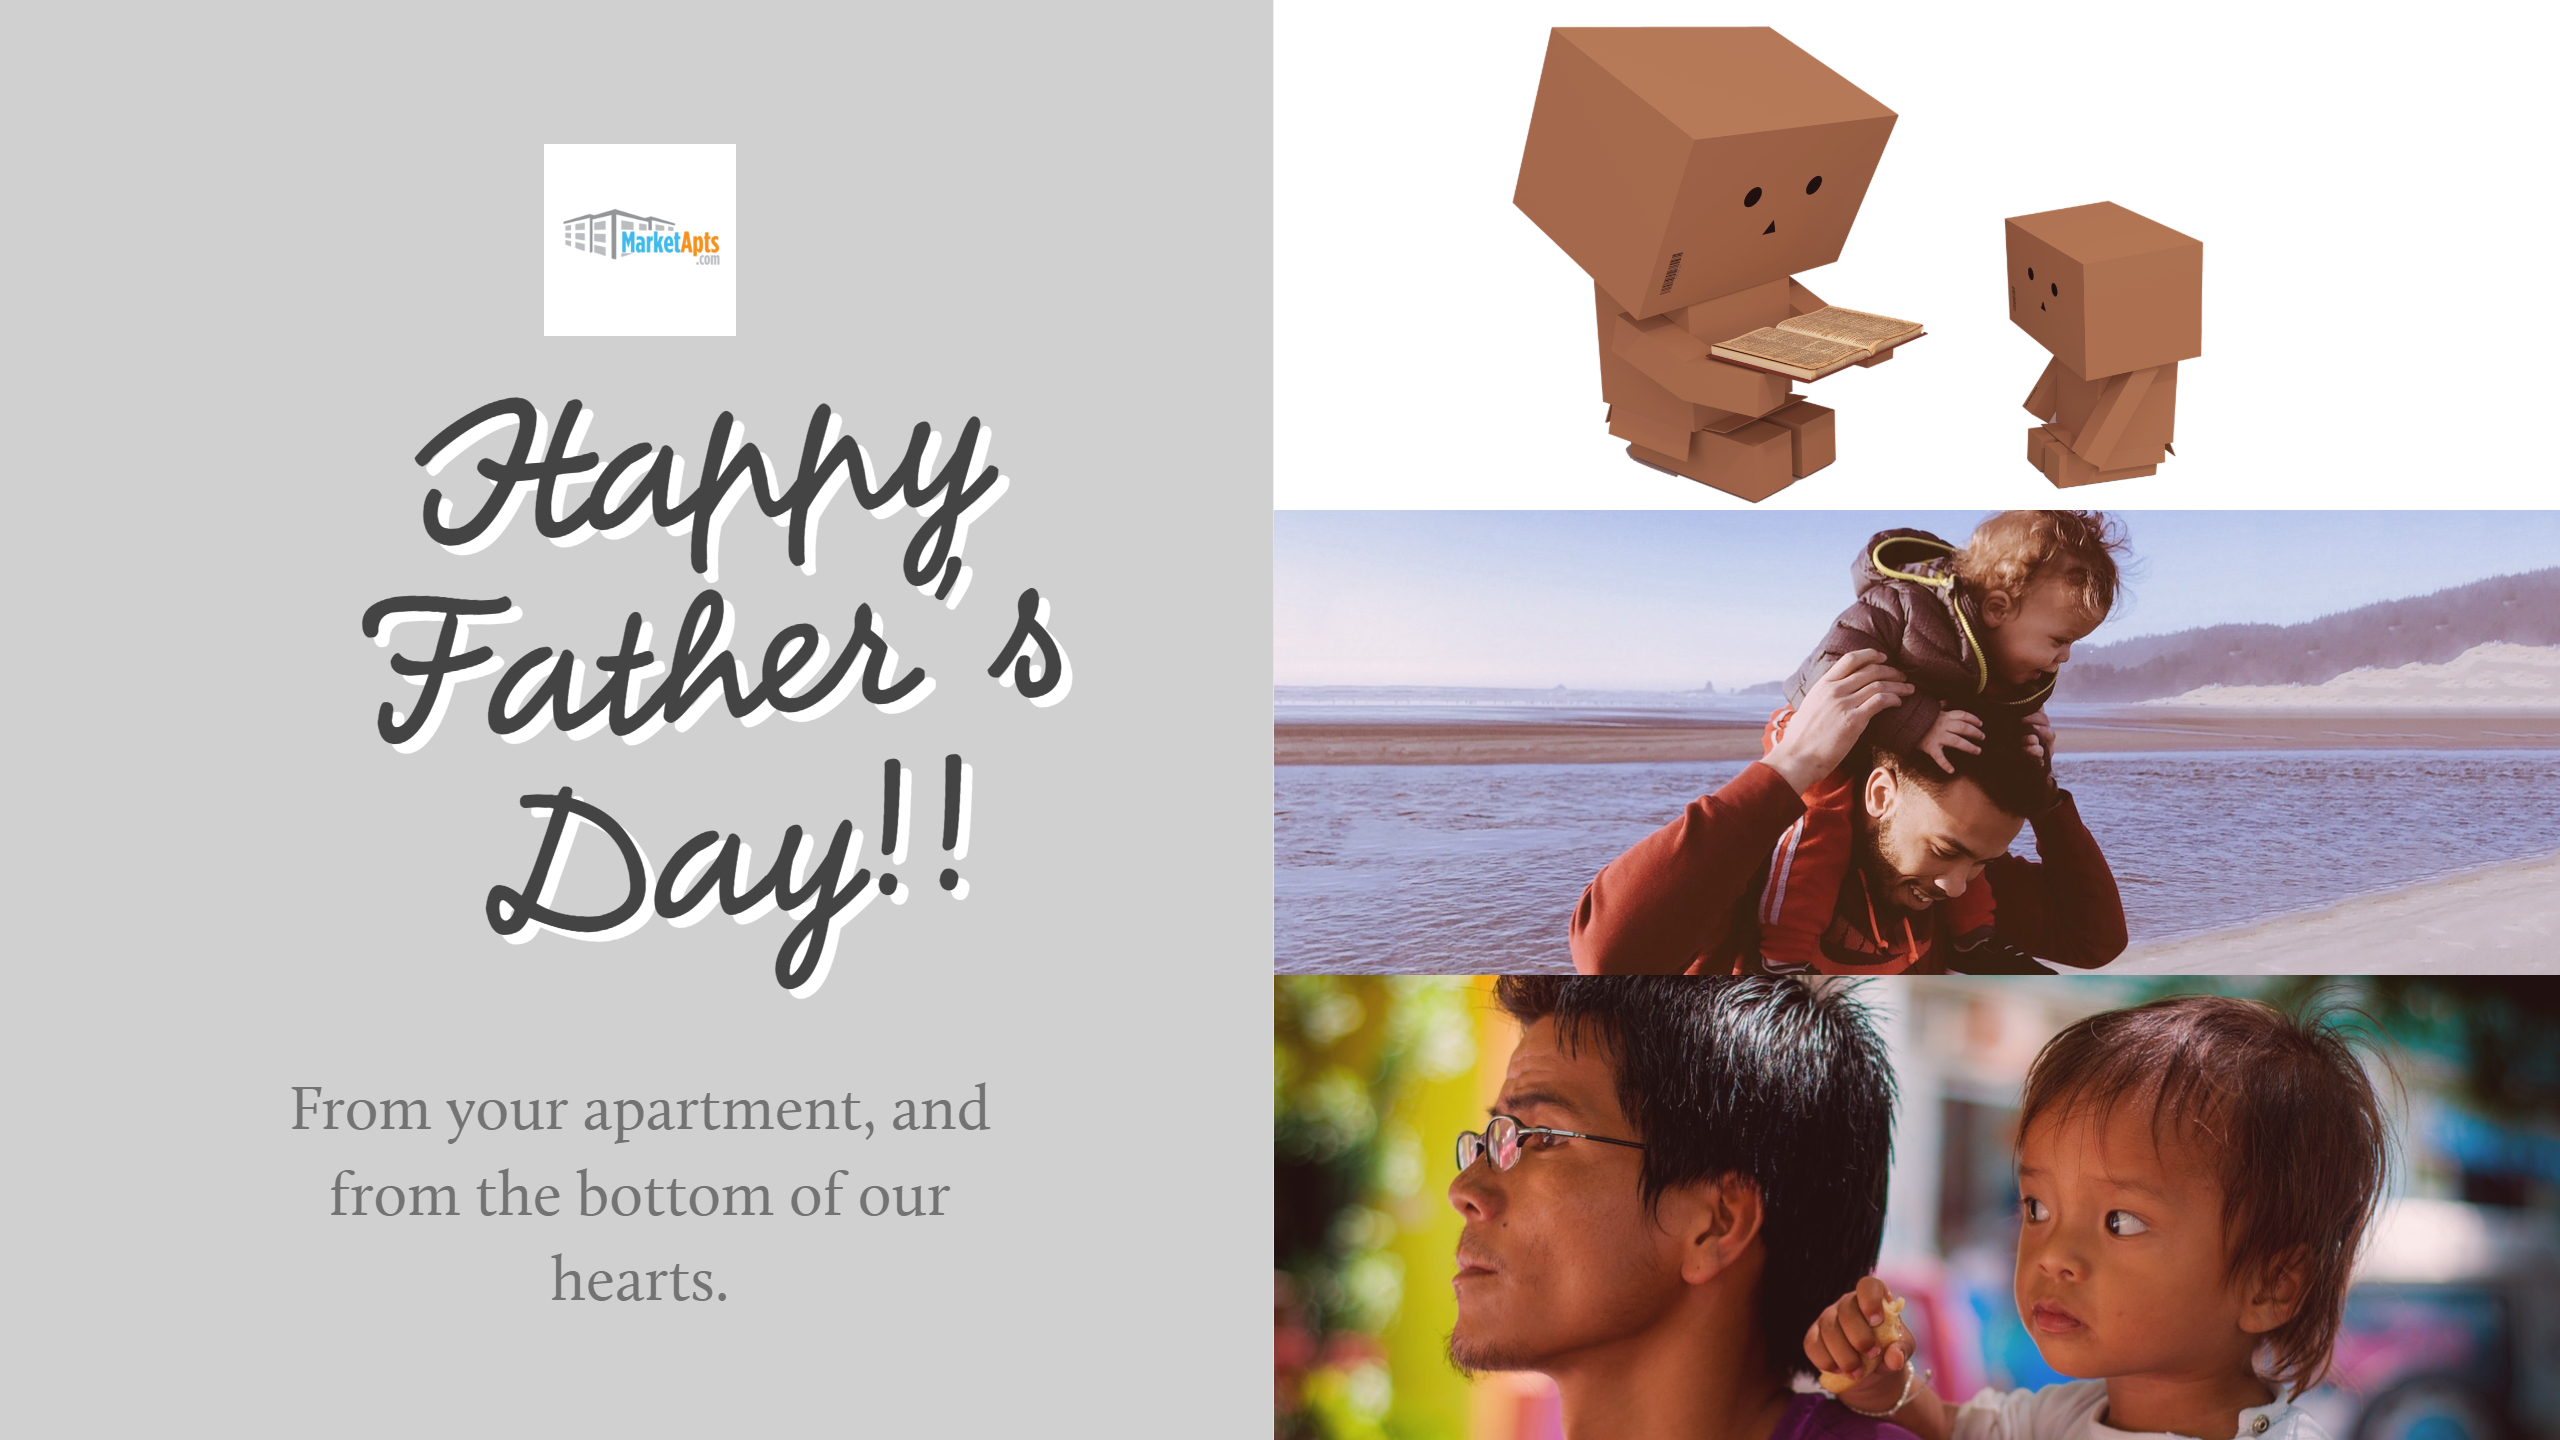 Happy Father's Day from your apartment!